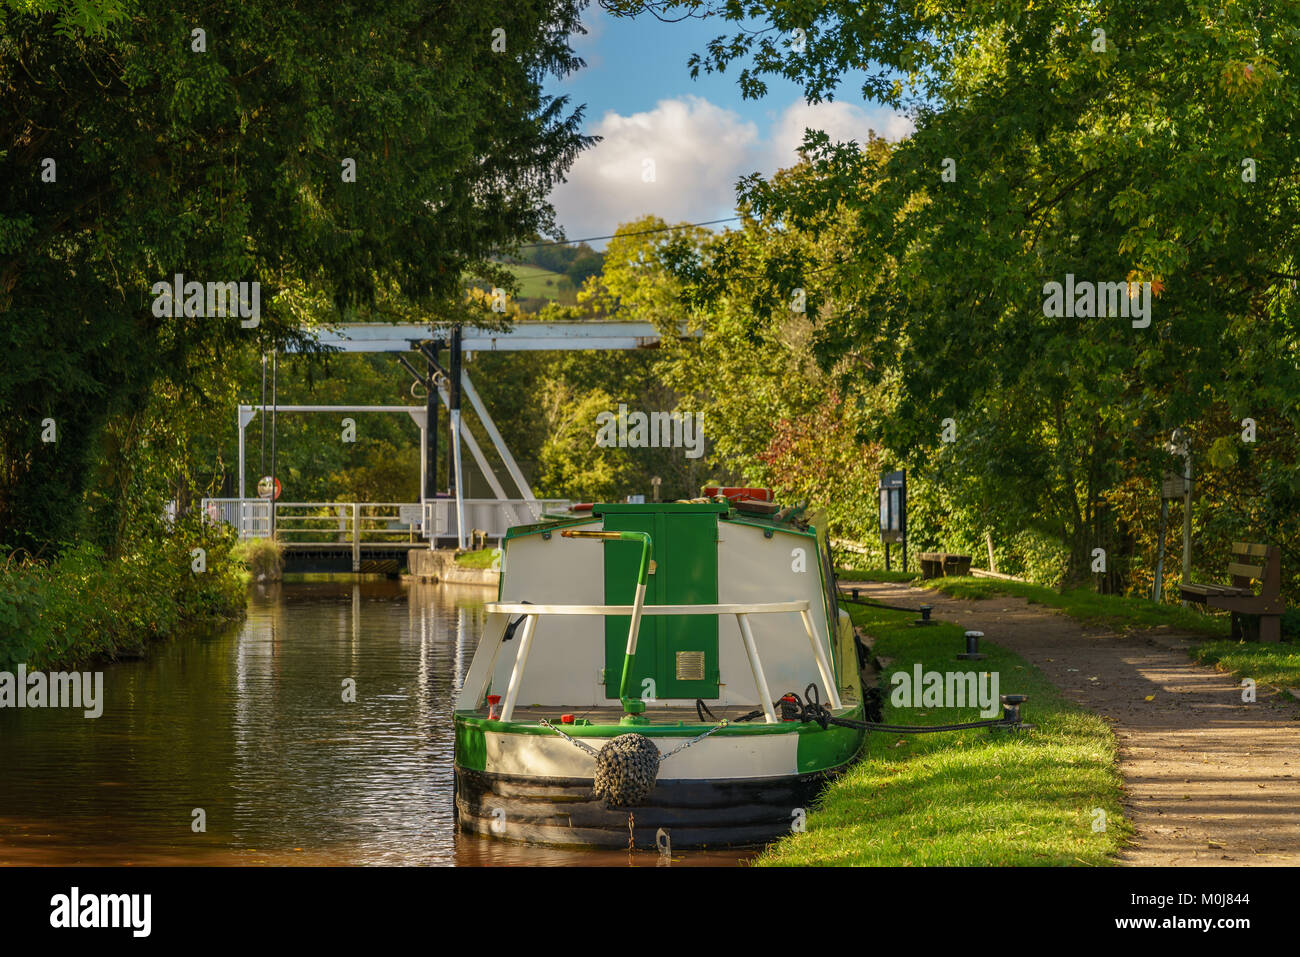 The Monmouthshire & Brecon Canal with a boat and the lift bridge, seen in Talybont on Usk, Powys, Wales, UK - Stock Image